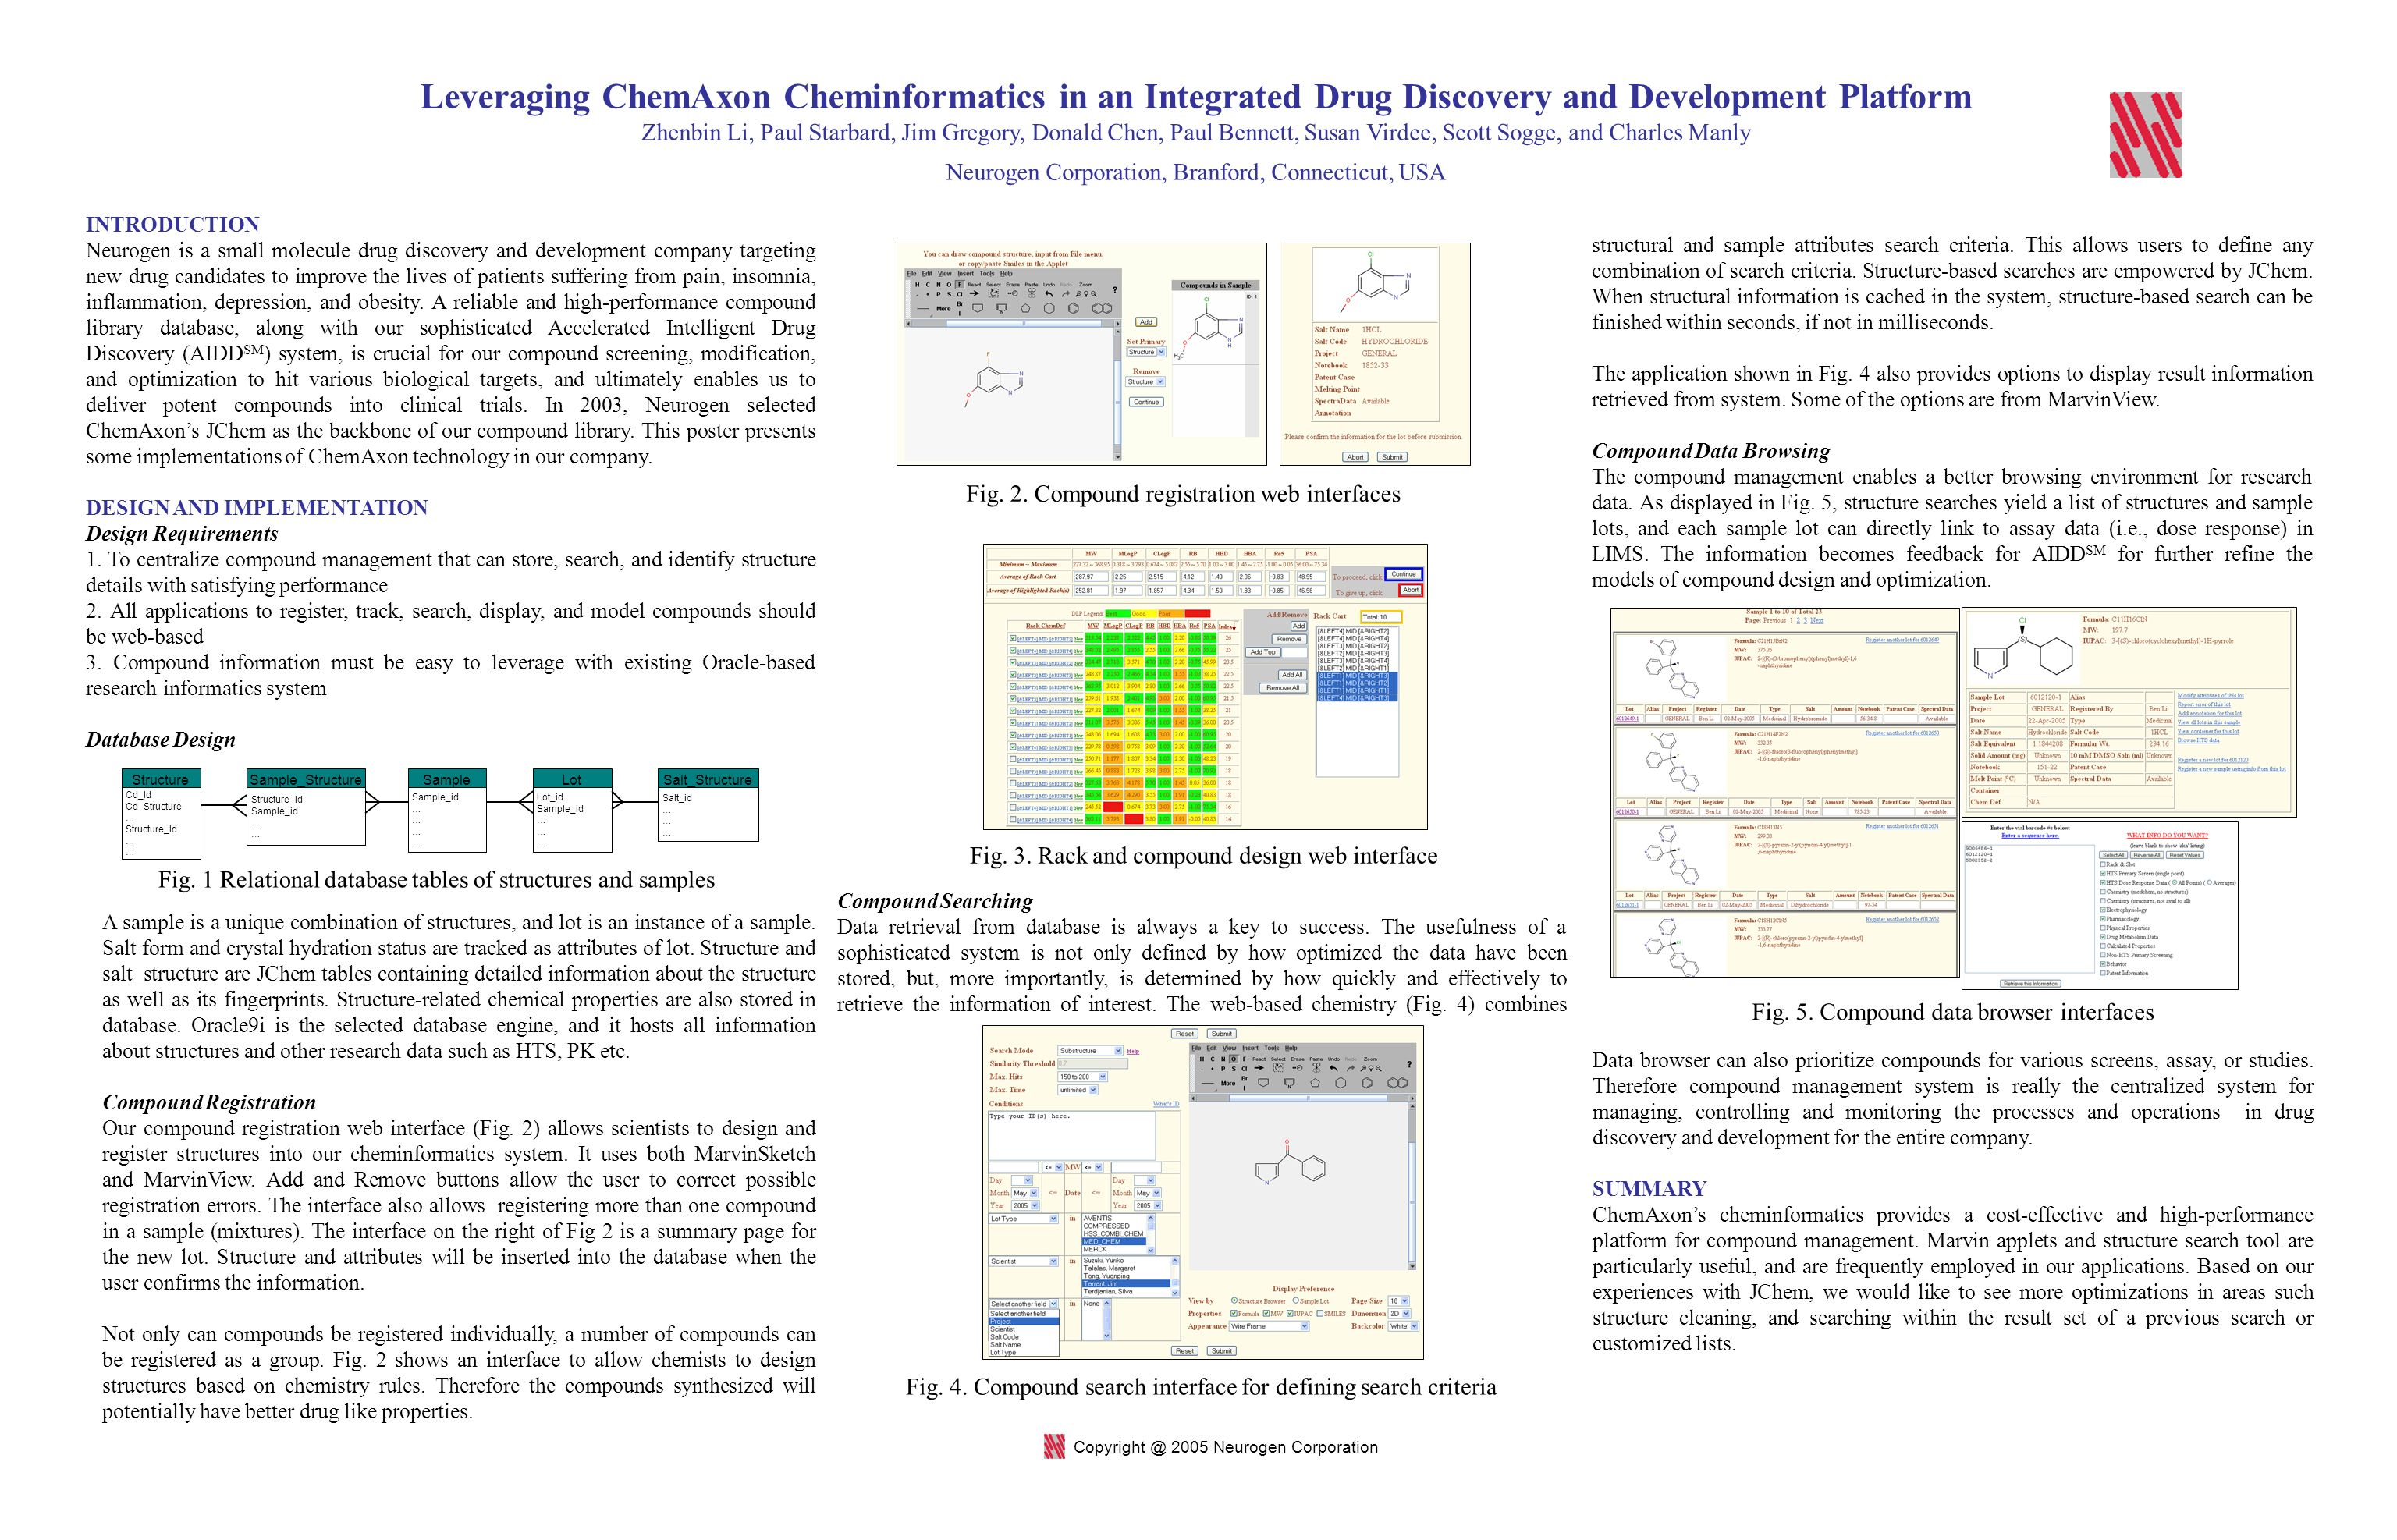 Leveraging ChemAxon Cheminformatics in an Integrated Drug Discovery and Development Platform Zhenbin Li, Paul Starbard, Jim Gregory, Donald Chen, Paul Bennett, Susan Virdee, Scott Sogge, and Charles Manly Neurogen Corporation, Branford, Connecticut, USA structural and sample attributes search criteria.